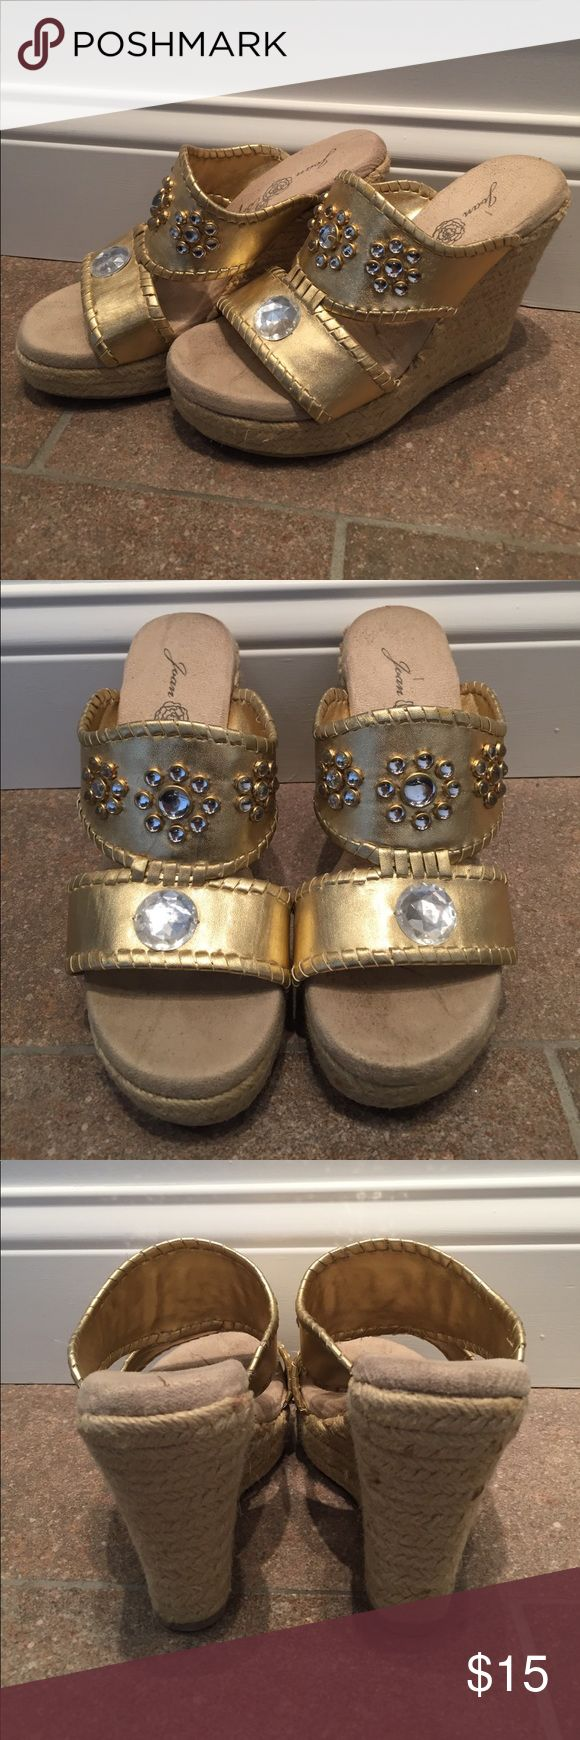 Bejeweled Gold Espadrilles Gold bejeweled espadrilles slides. Never worn, have a few stains from sitting in storage. Easily cleaned. From HSN, Joan Boyce. Make an offer! :-) Shoes Espadrilles